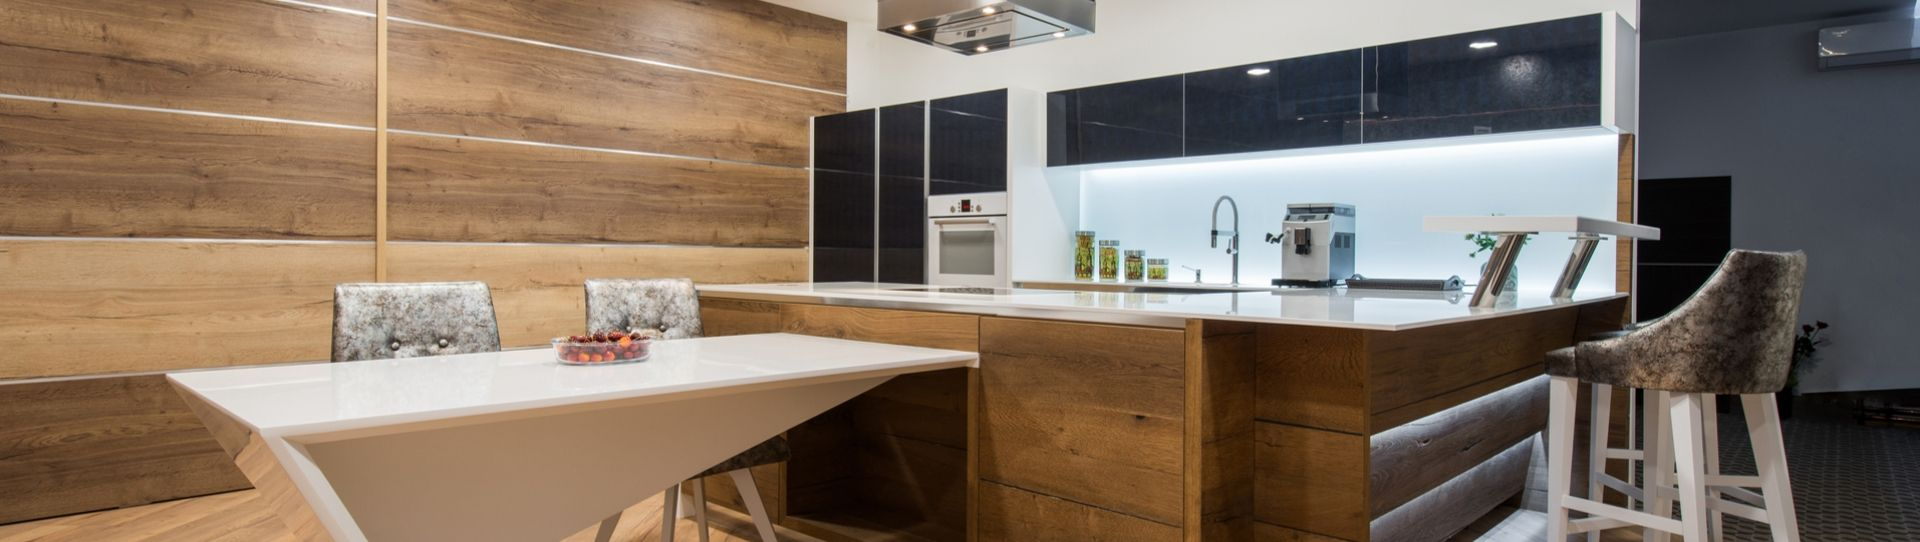 Decorative plywood that gives natural elegance to your home | Wood and veneers